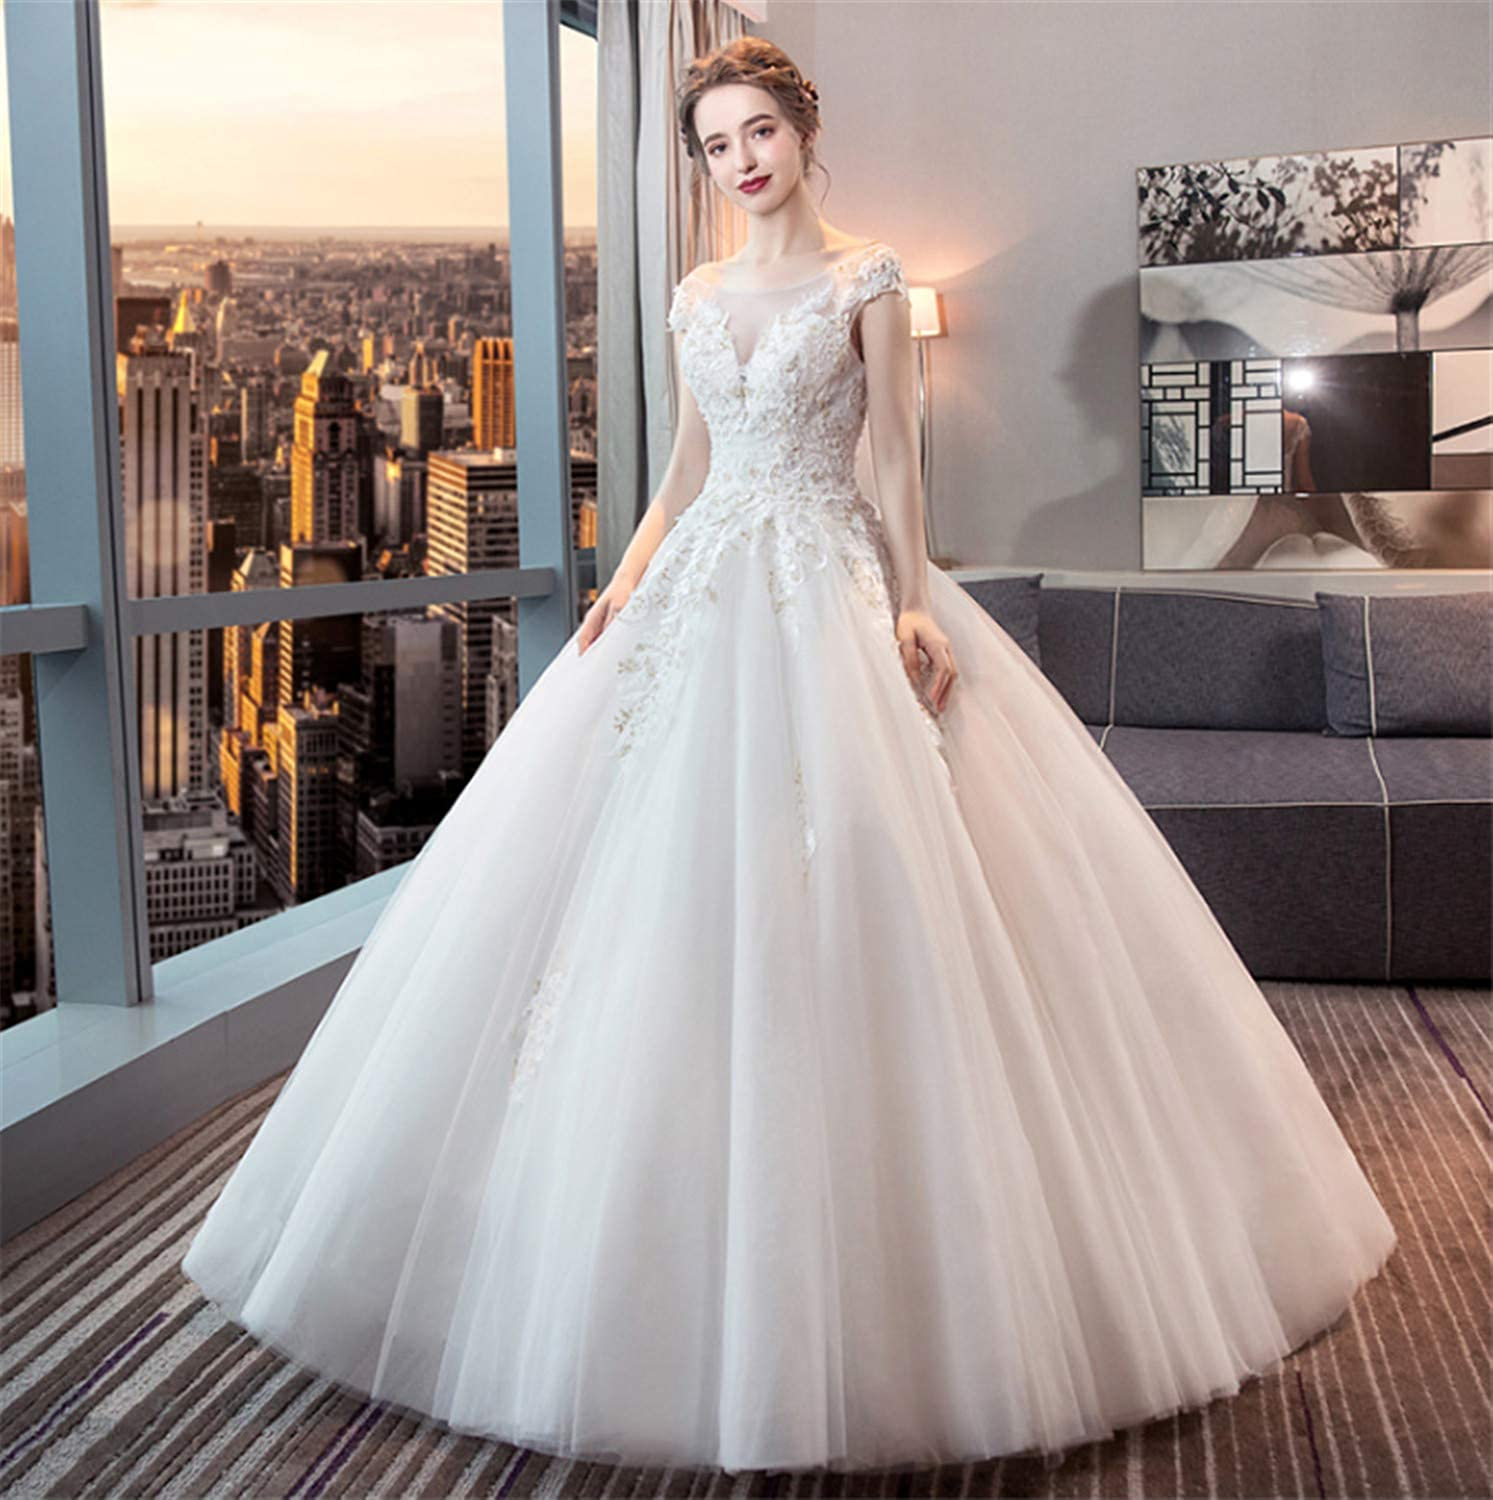 Wedding Dress,Stylish Ladies Backless Round Petticoat Wedding Dress with Lace Perfect Princess White